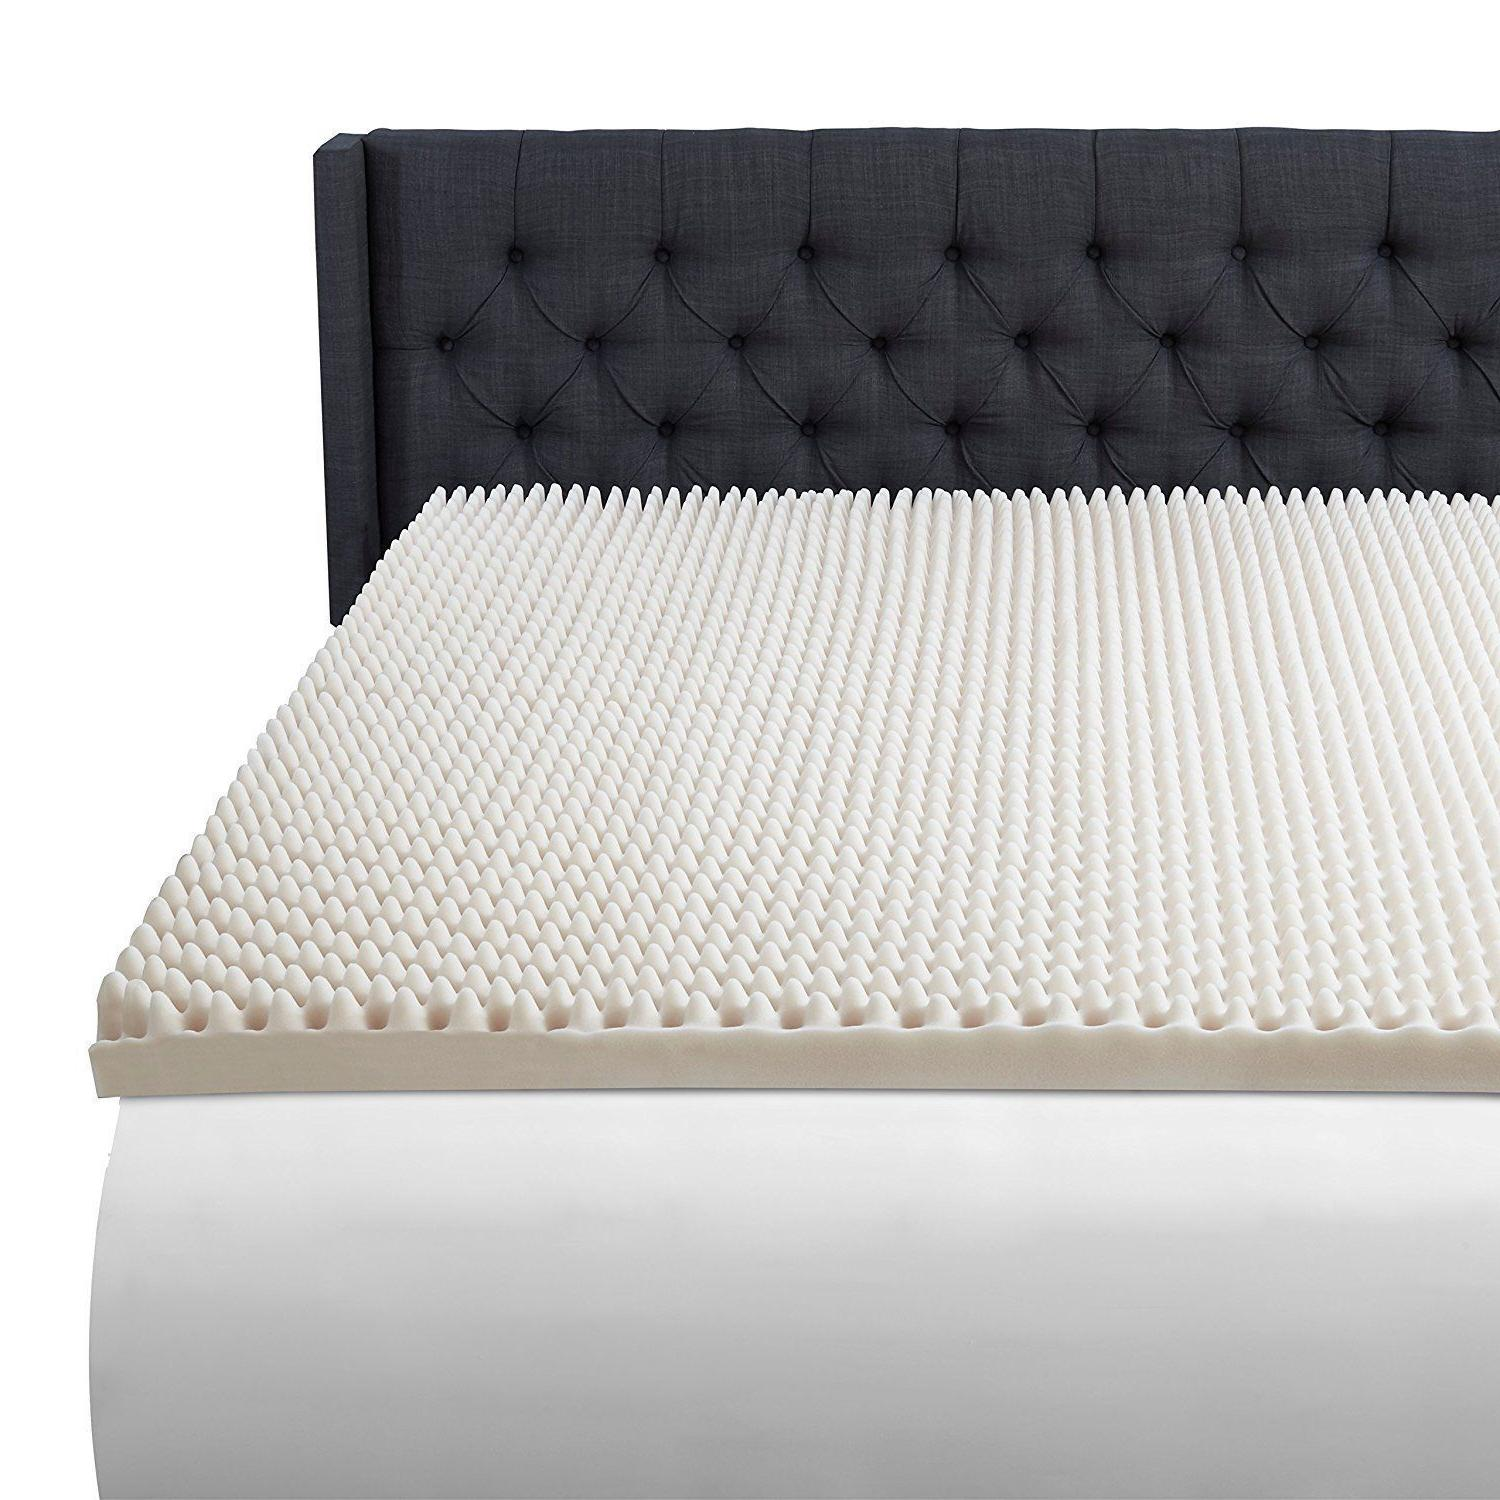 3 Luxury Mattress Topper Convoluted Bed Cover Room